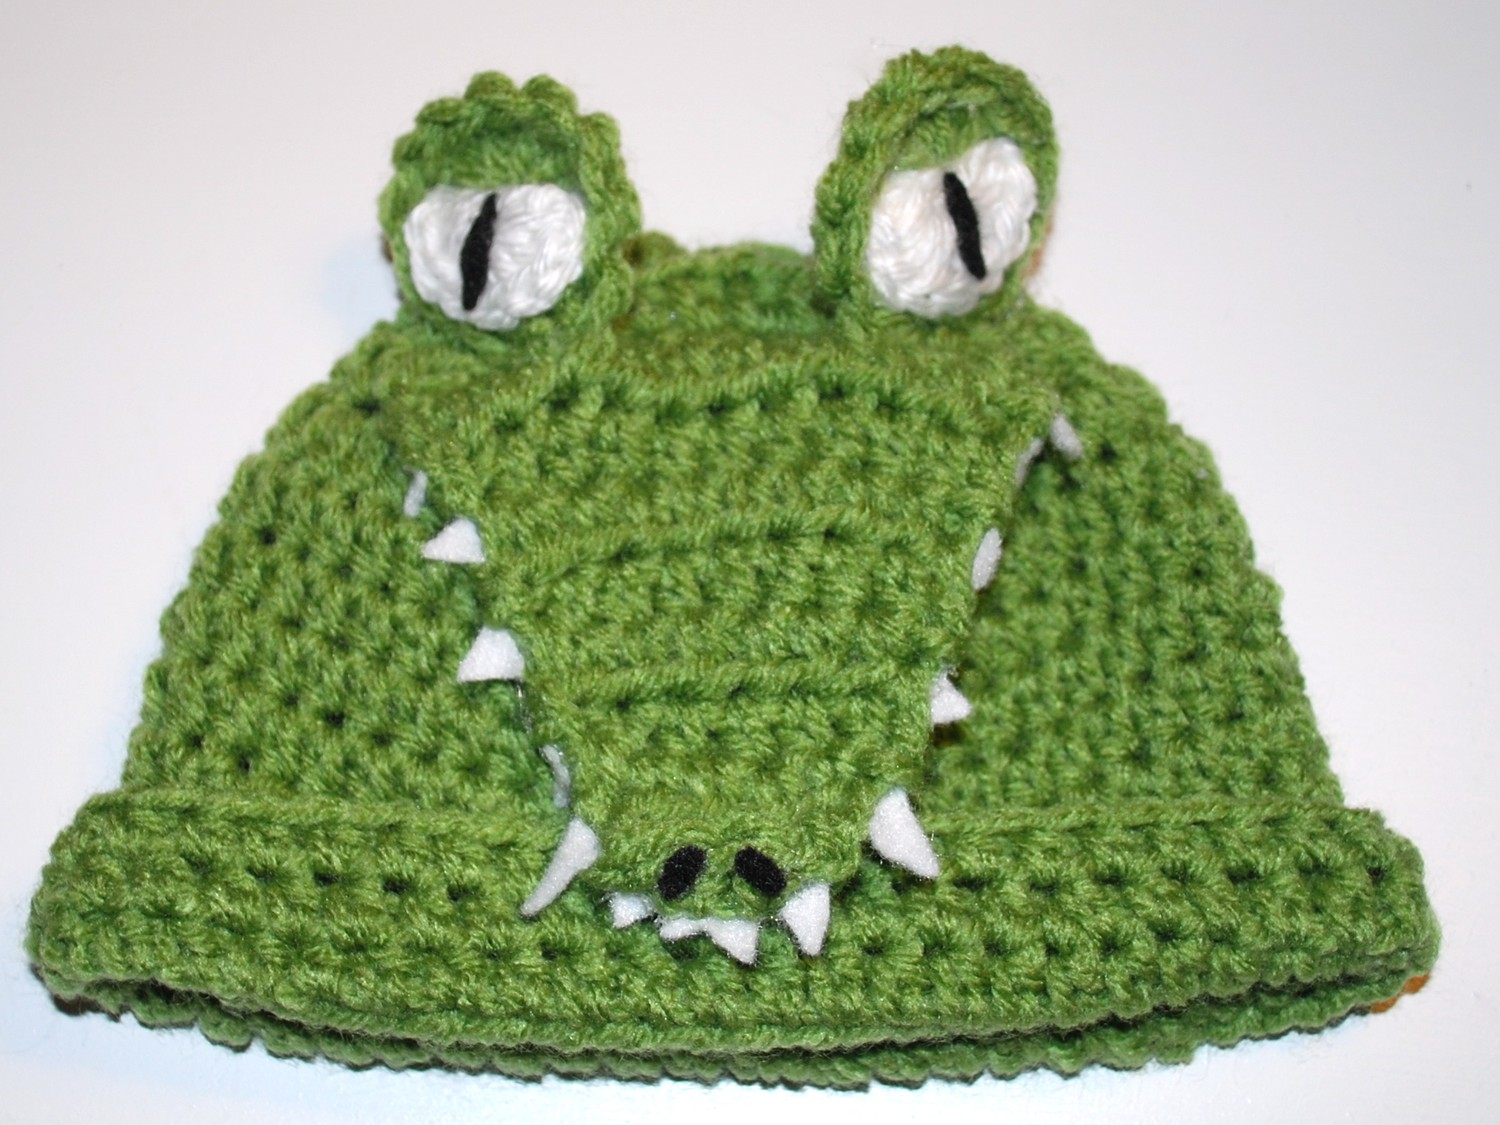 Crochet Alligator Hat Alligator Hat Ba Ideas Pinterest Crochet Hats Crochet And Hats